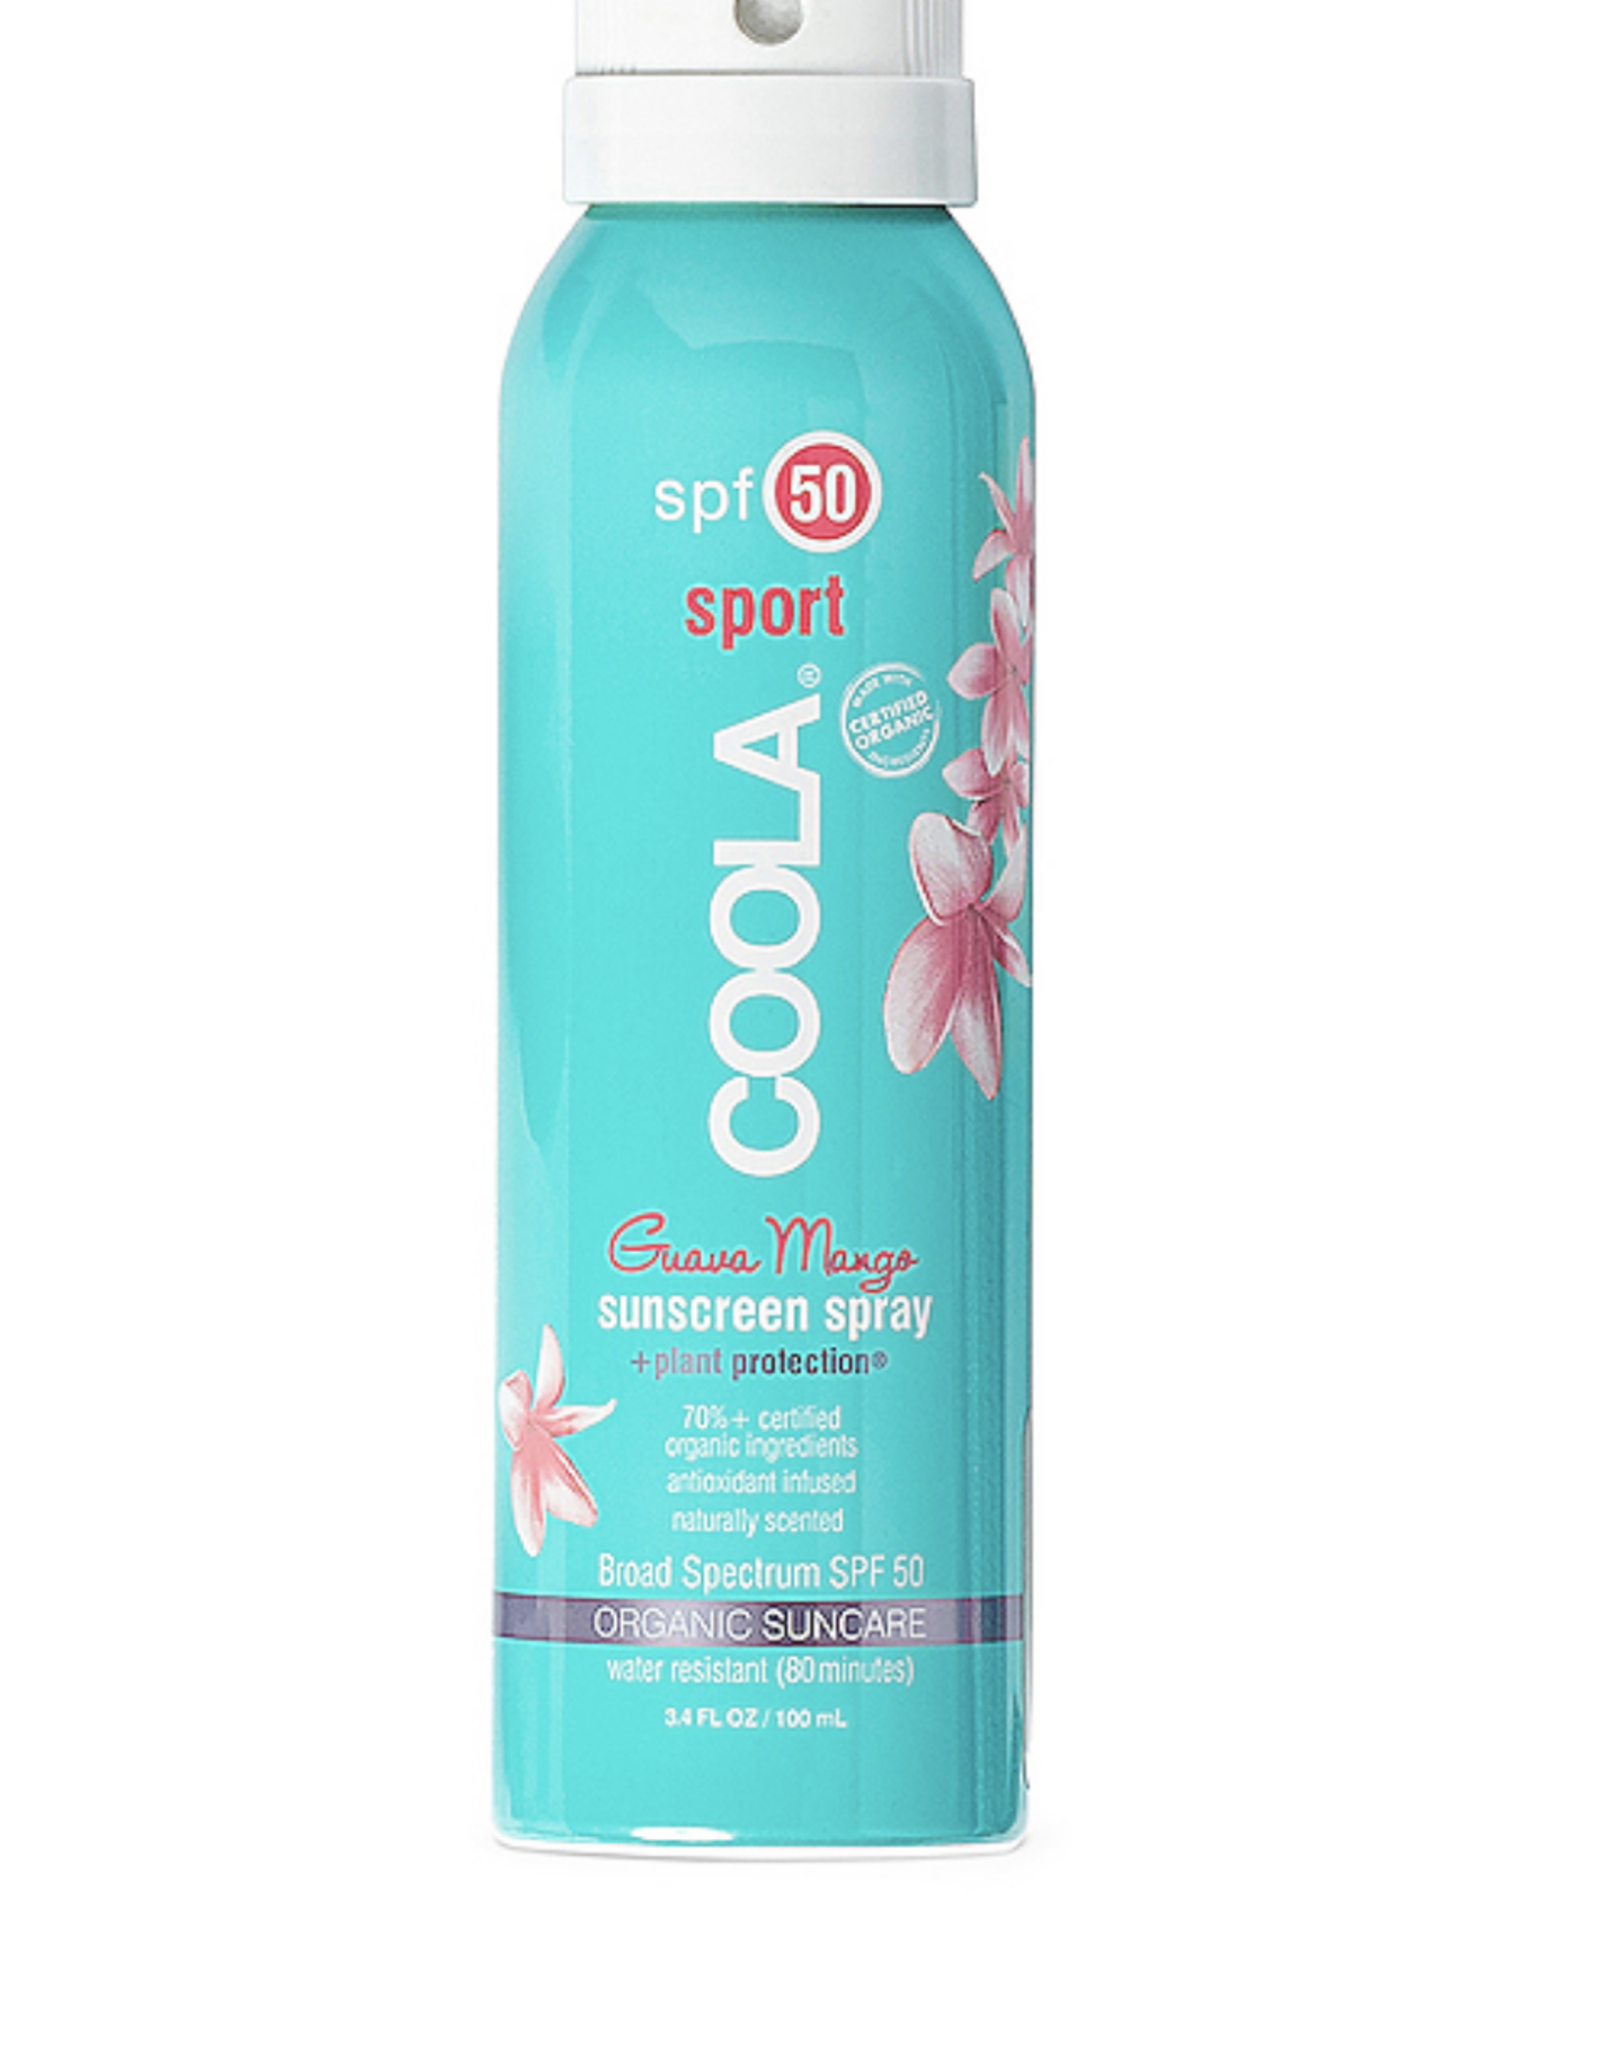 Coola Guava Mango Body Spray Sunscreen SPF 50 3.4 Oz